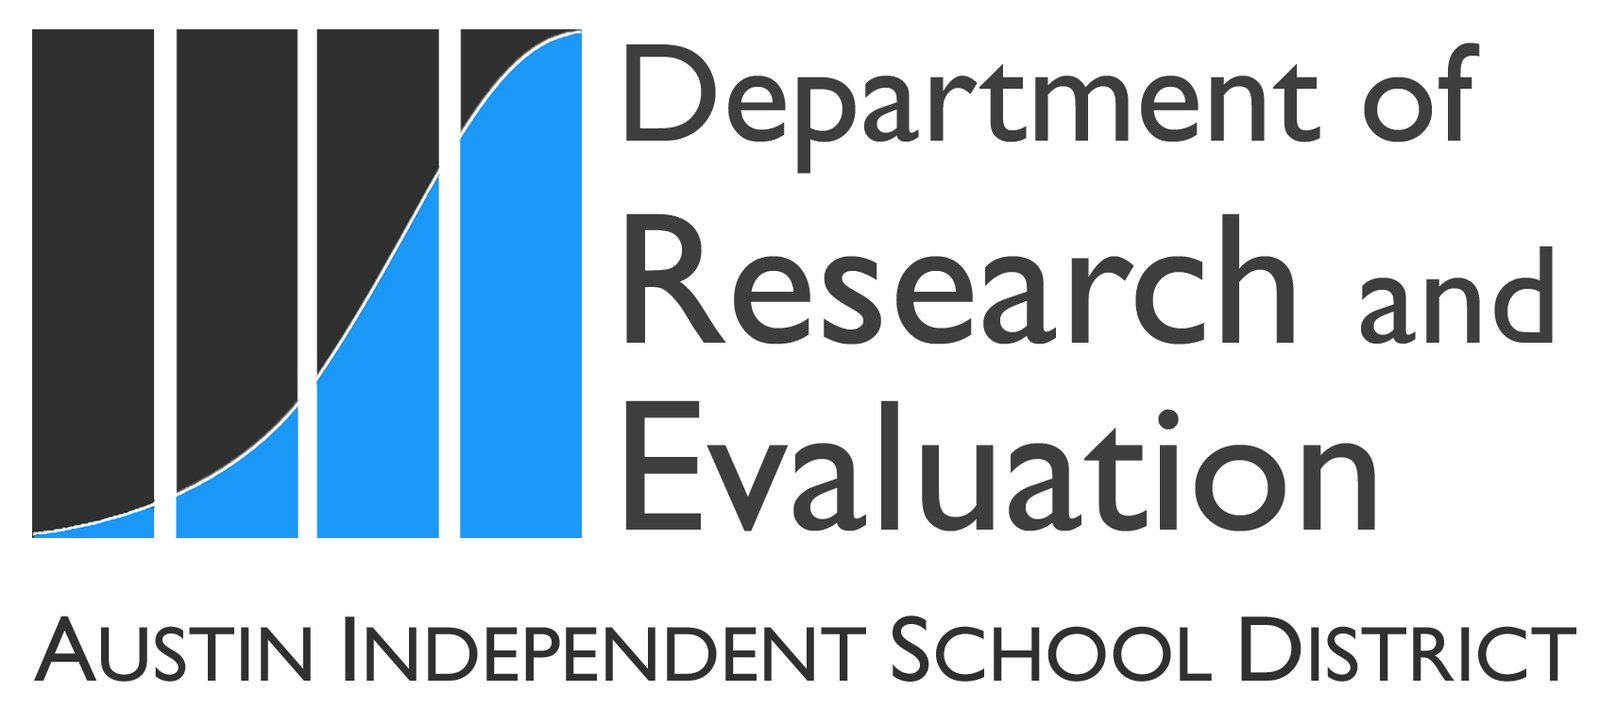 AISD Department of Research and Evaluation